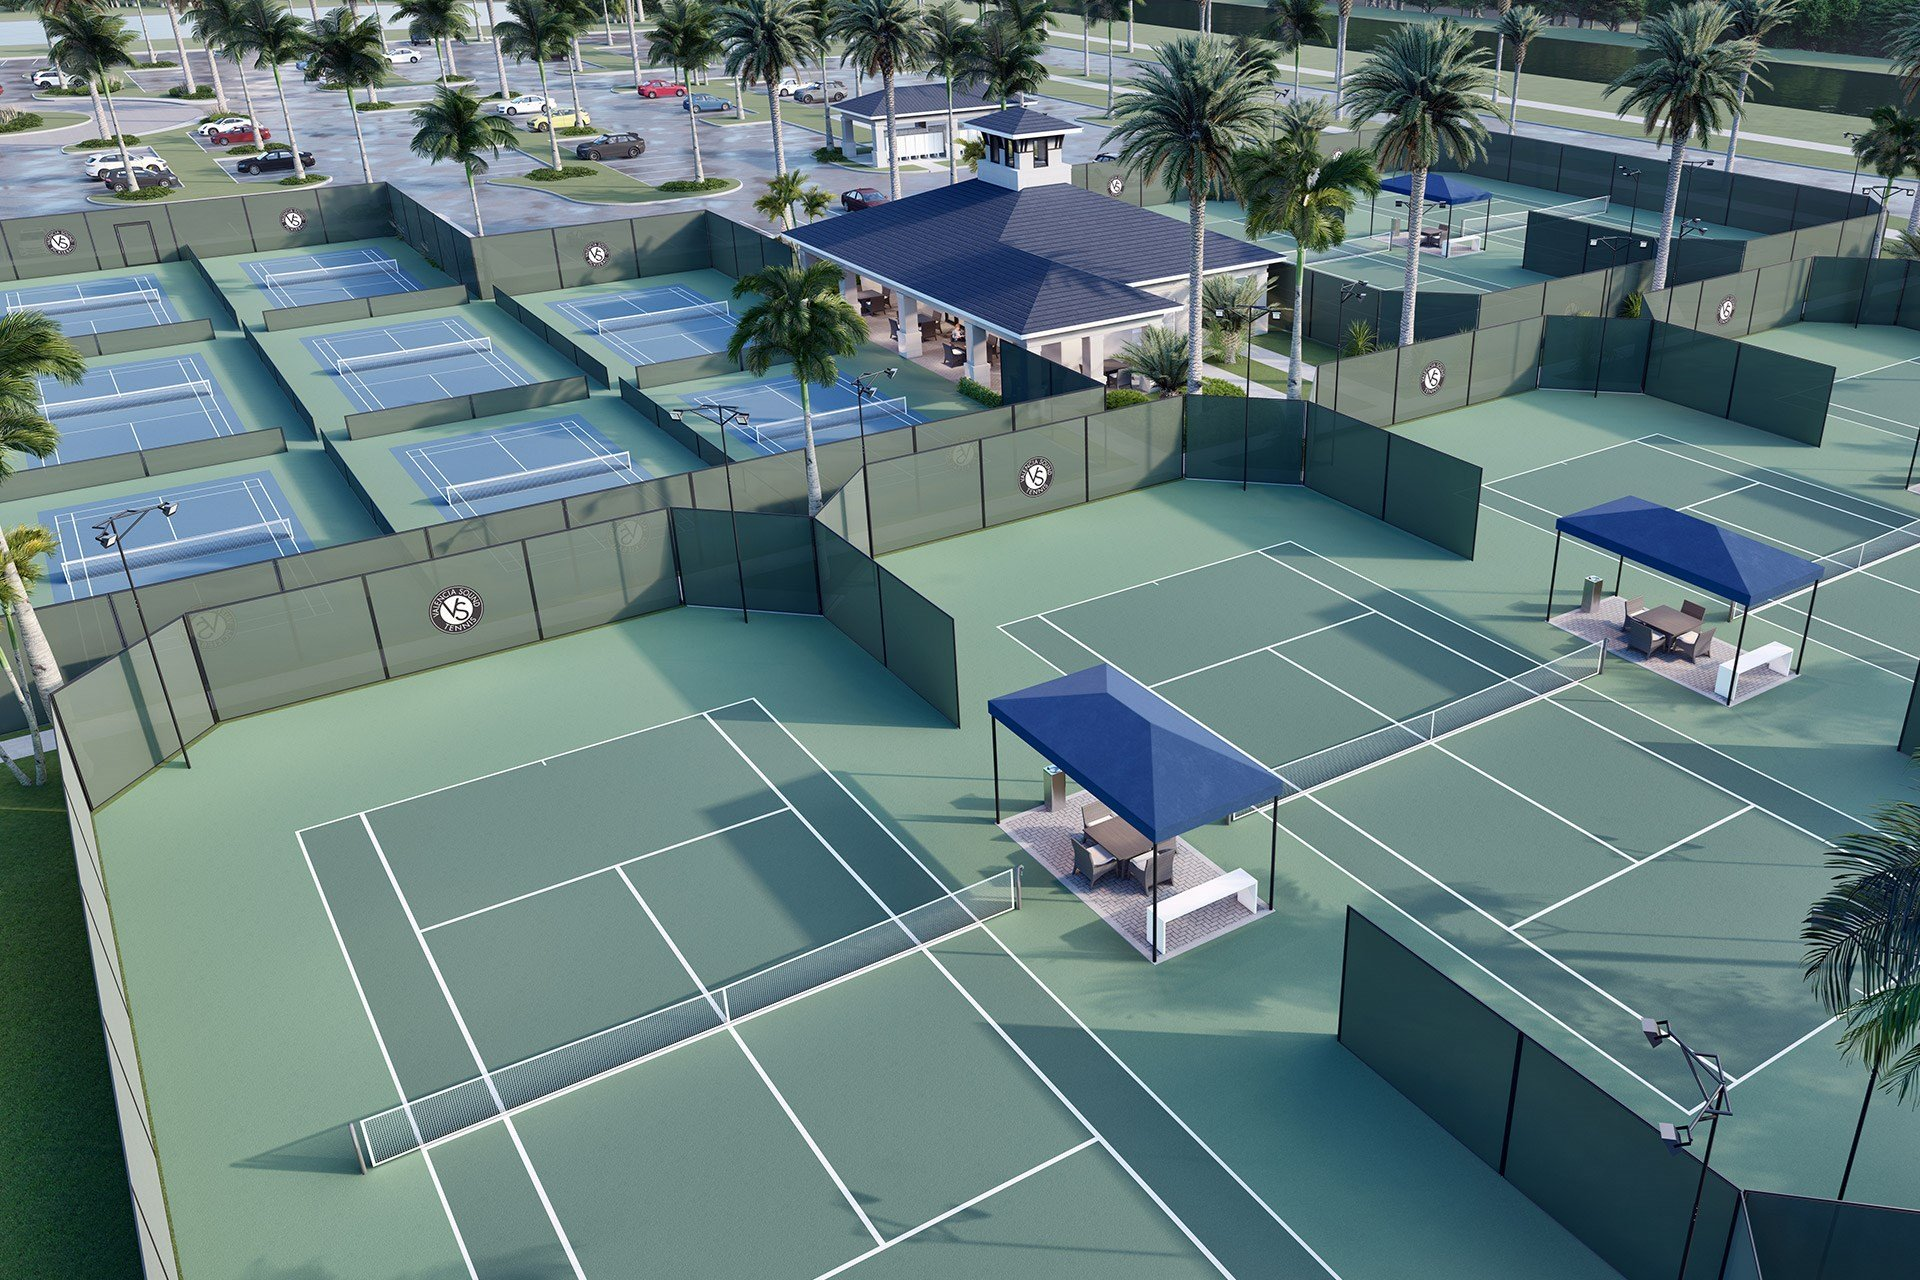 Valencia Sound Pickle Ball and Tennis Courts